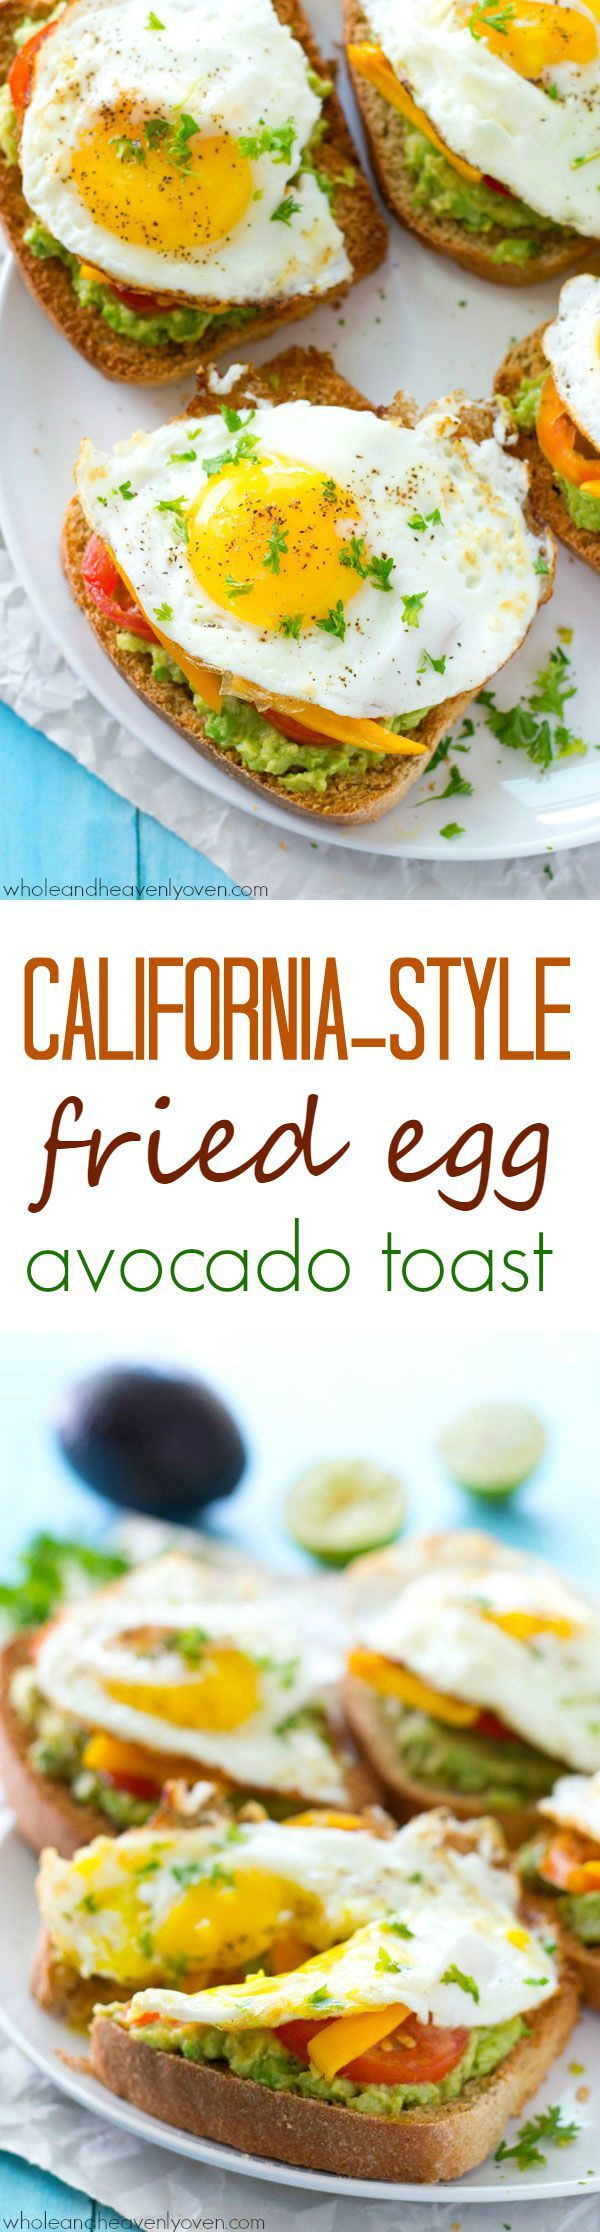 California-Style Fried Egg Avocado Toast